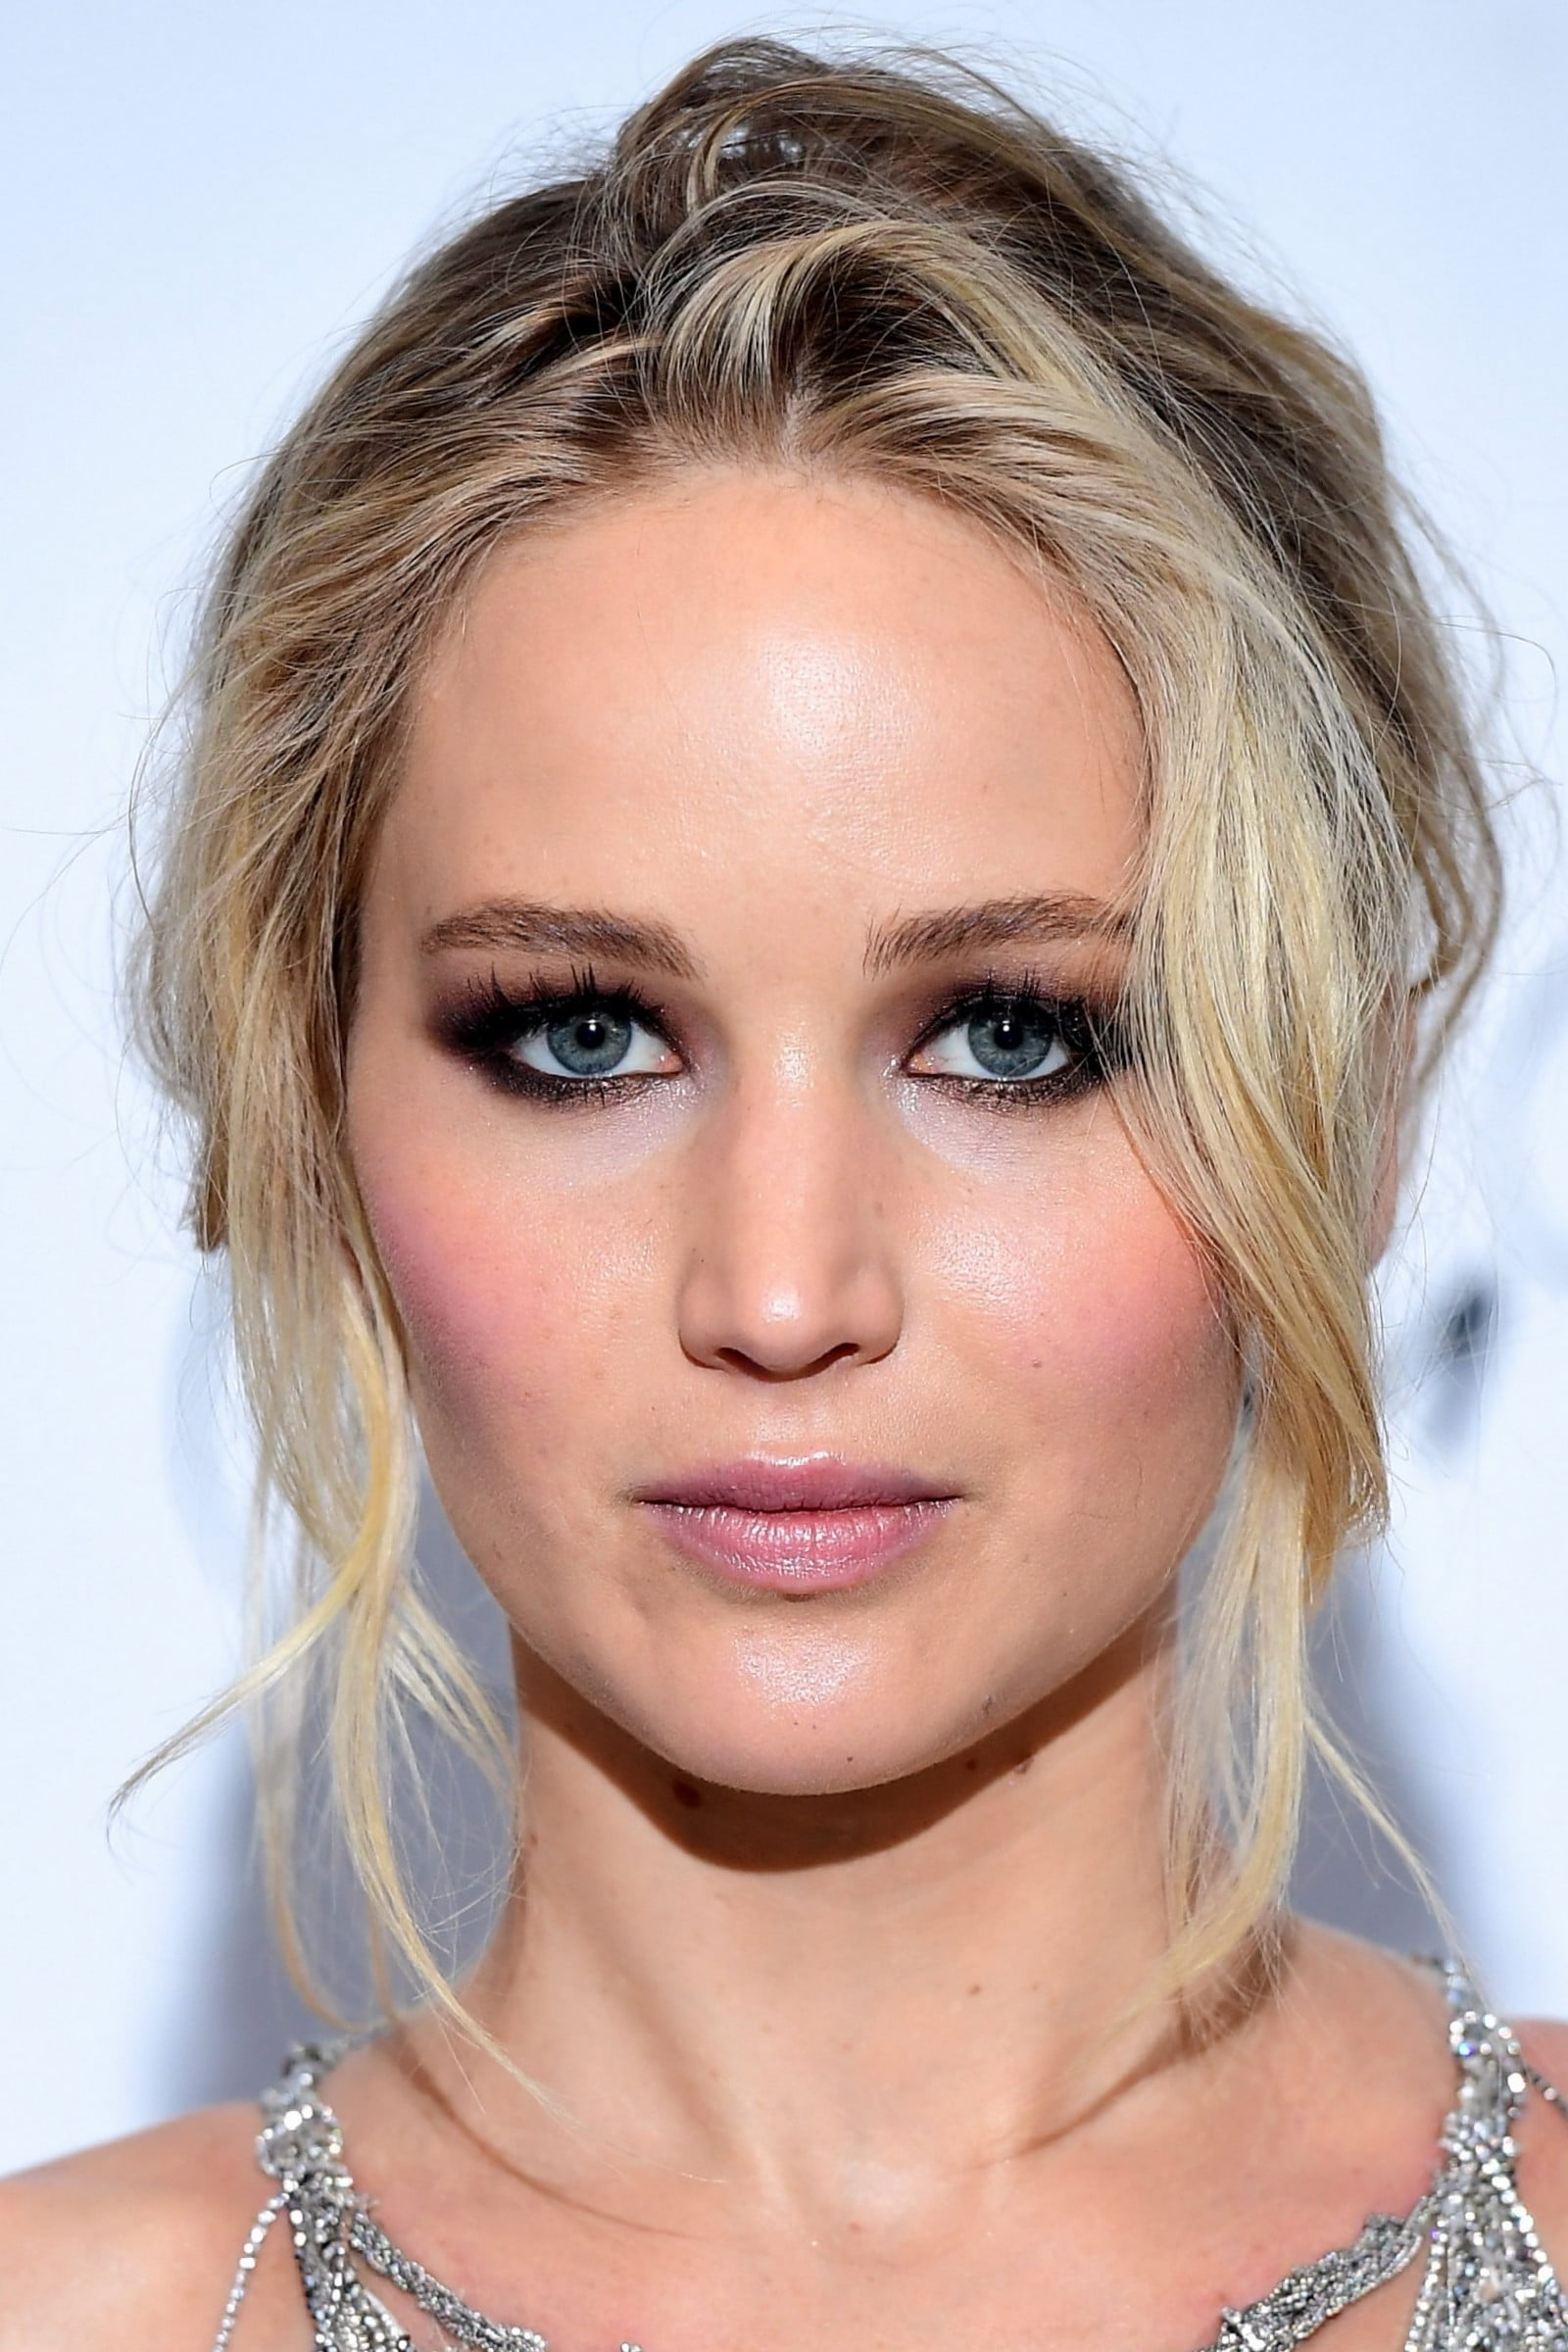 Jennifer Lawrence - Profile Images — The Movie Database (TMDb)